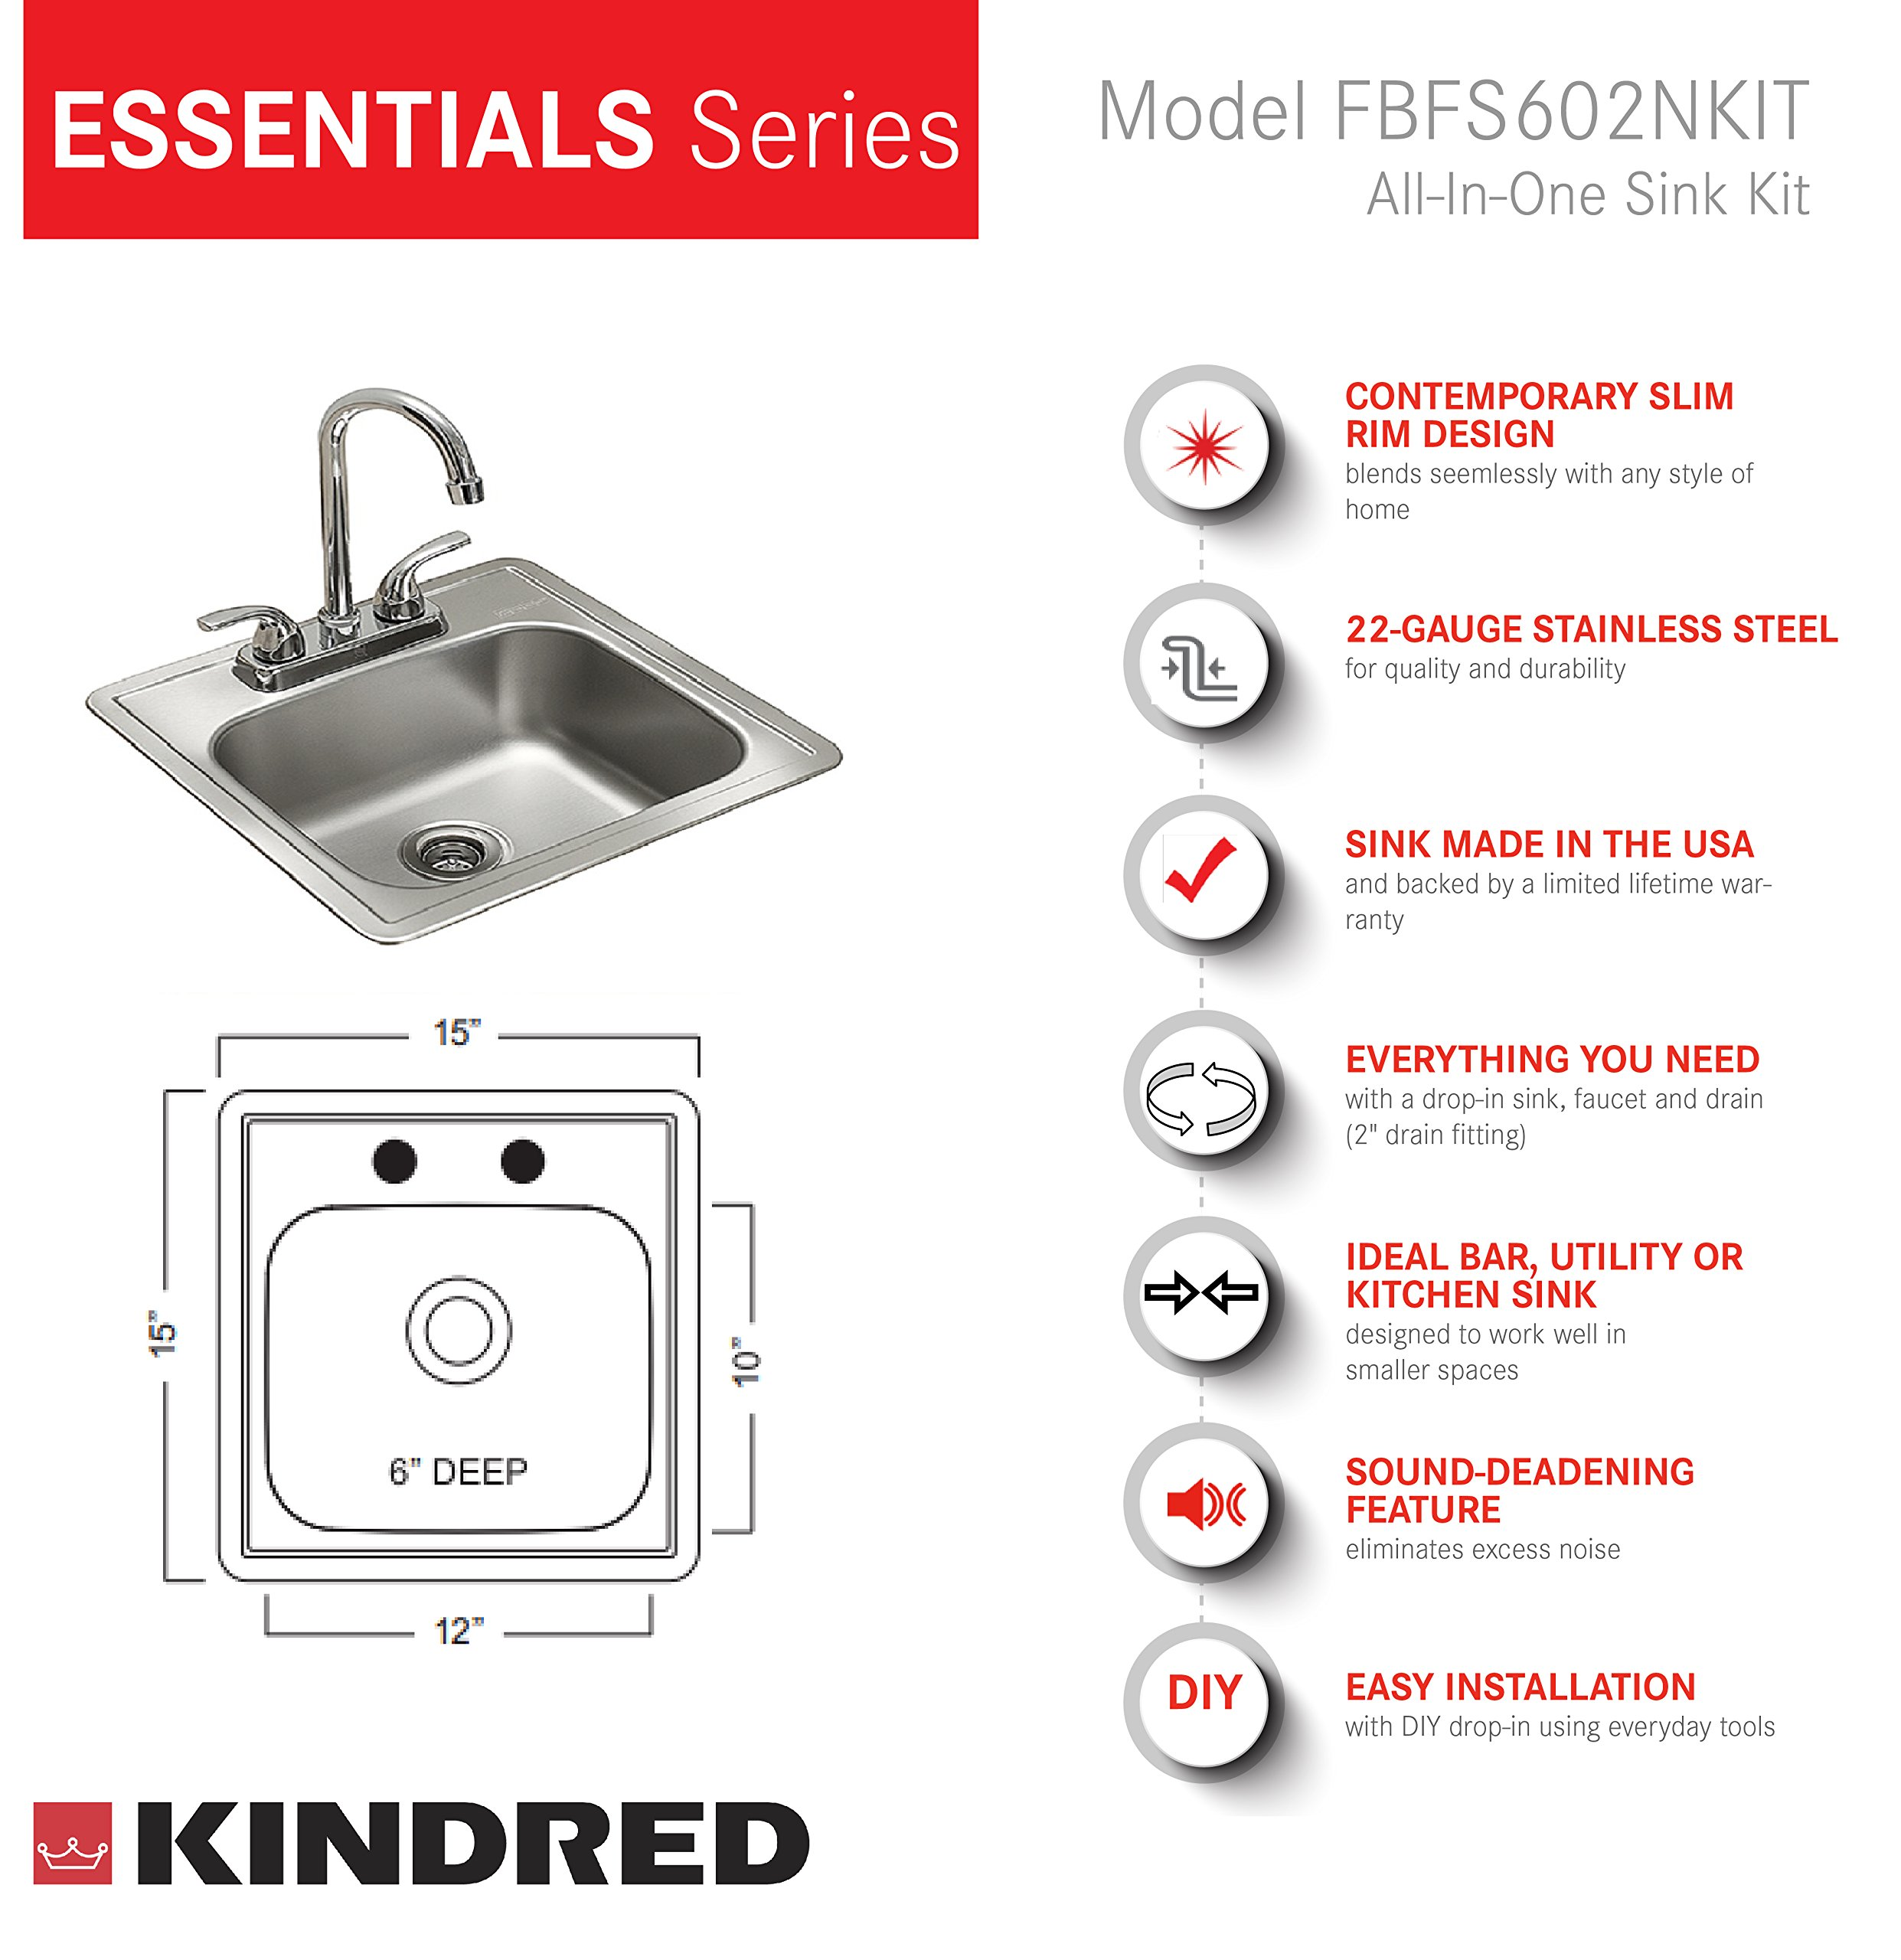 Kindred Essentials All-in-One Kit 15-inch x 15-inch x 6-inch Deep Drop-In Bar or Utility Sink in Satin Stainless Steel, FBFS602NKIT by KINDRED (Image #6)